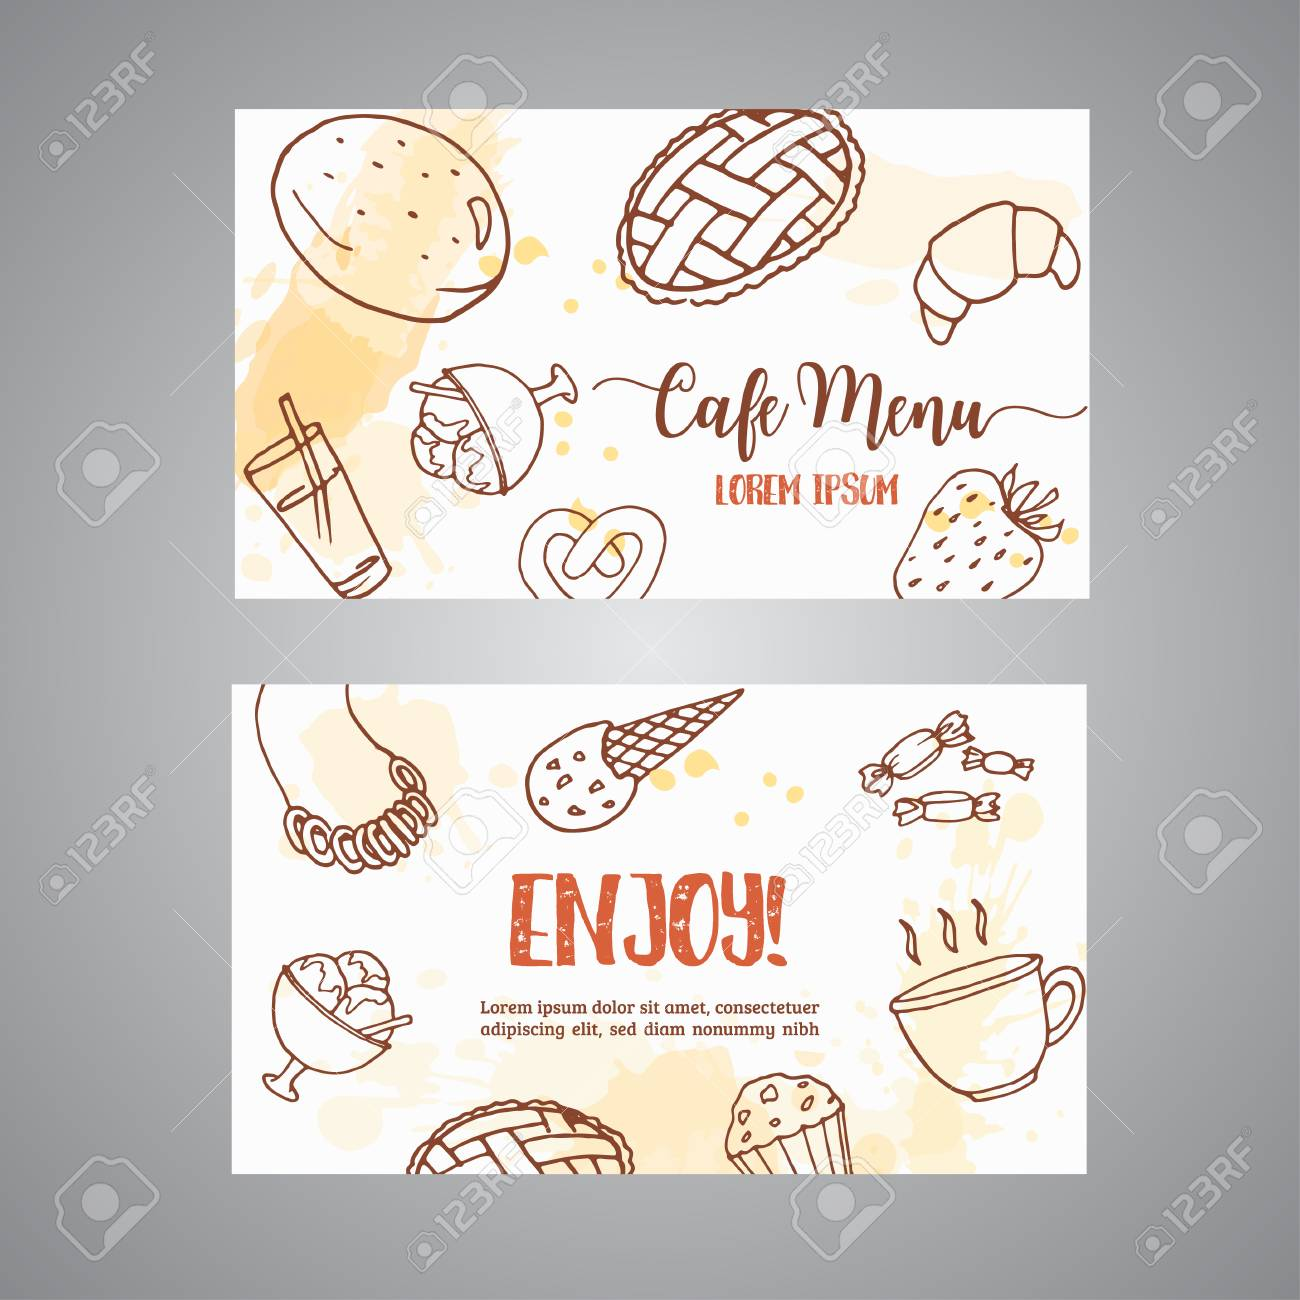 bakery business card template with pastries sweet pastry cupcakes